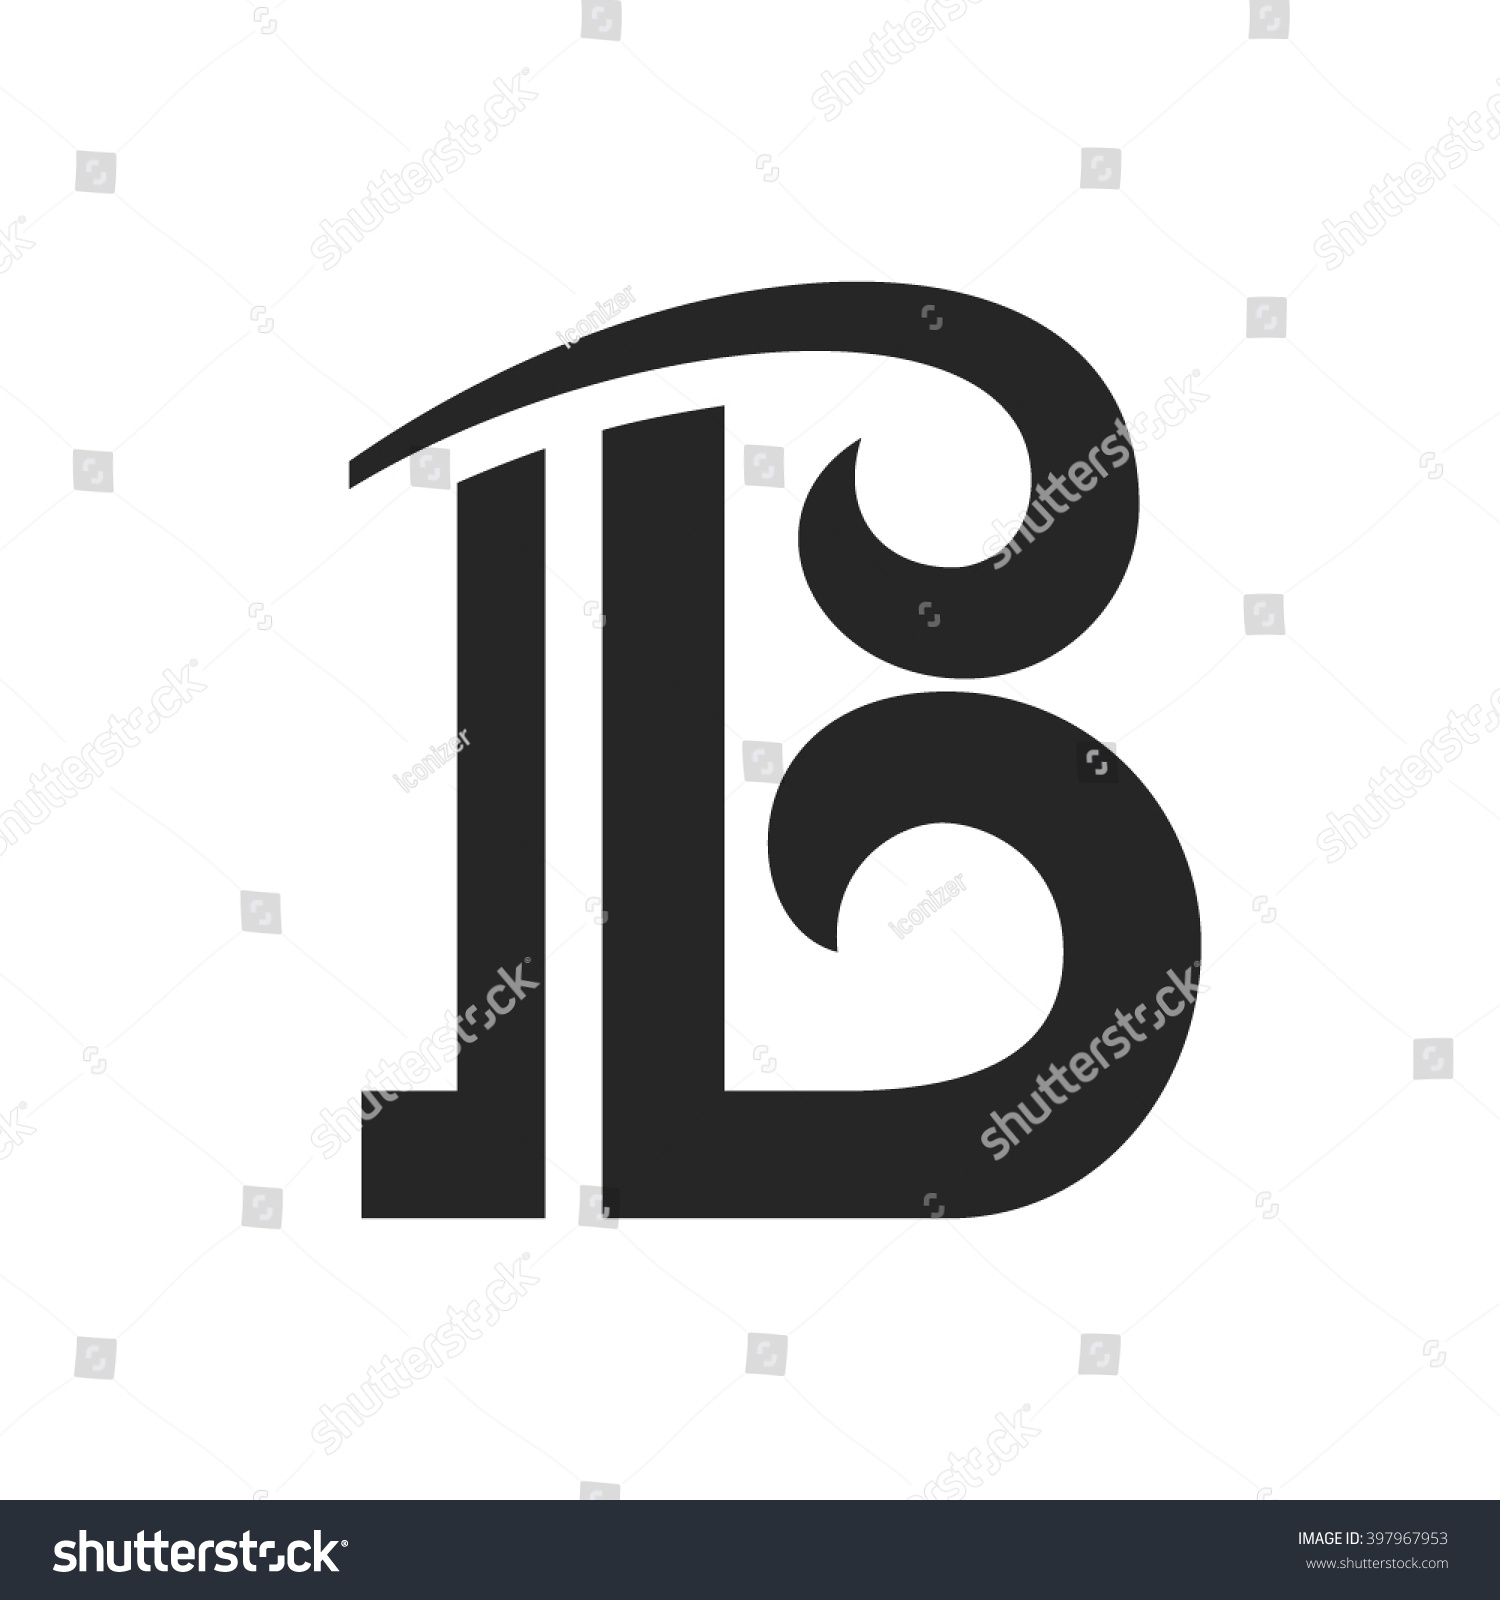 logo for letter b design concept